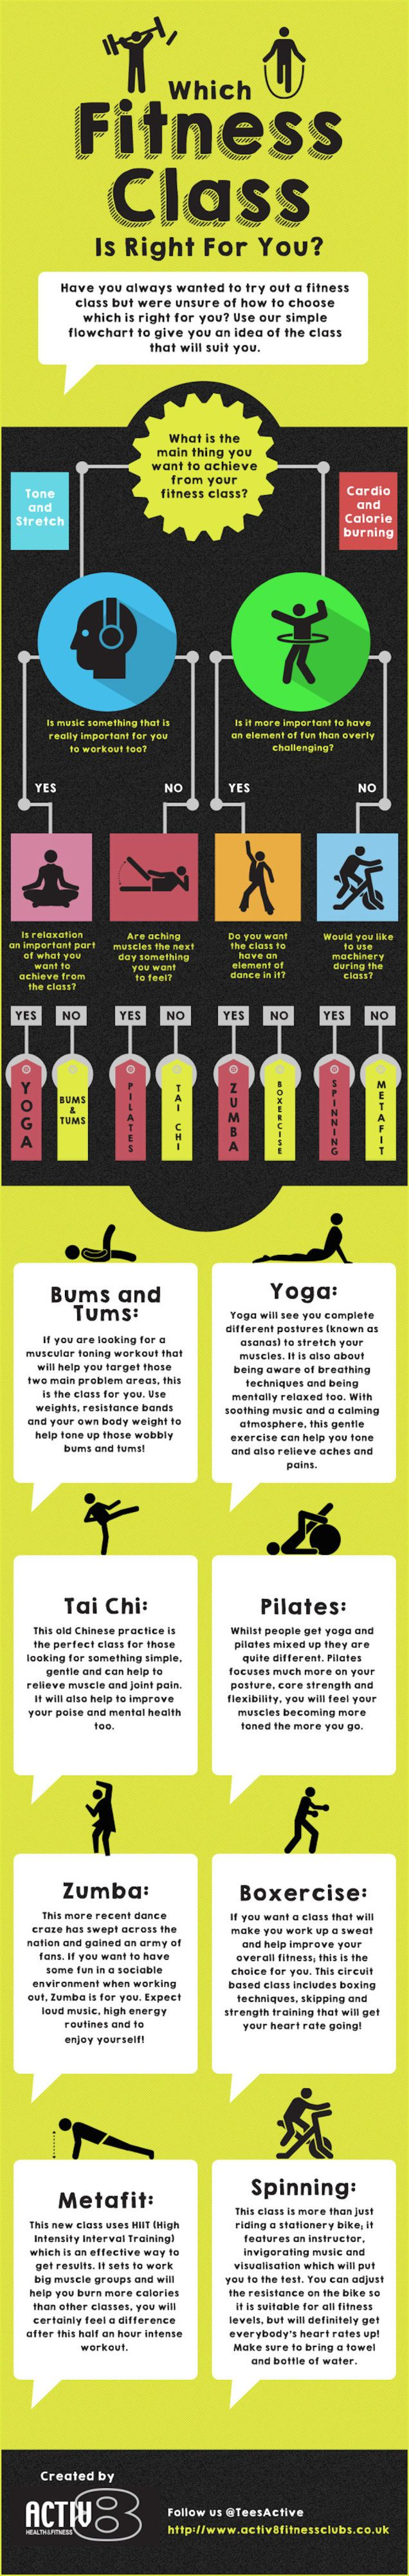 This Graphic Helps You Choose the Right Fitness Class for You. Found via LifeHacker.